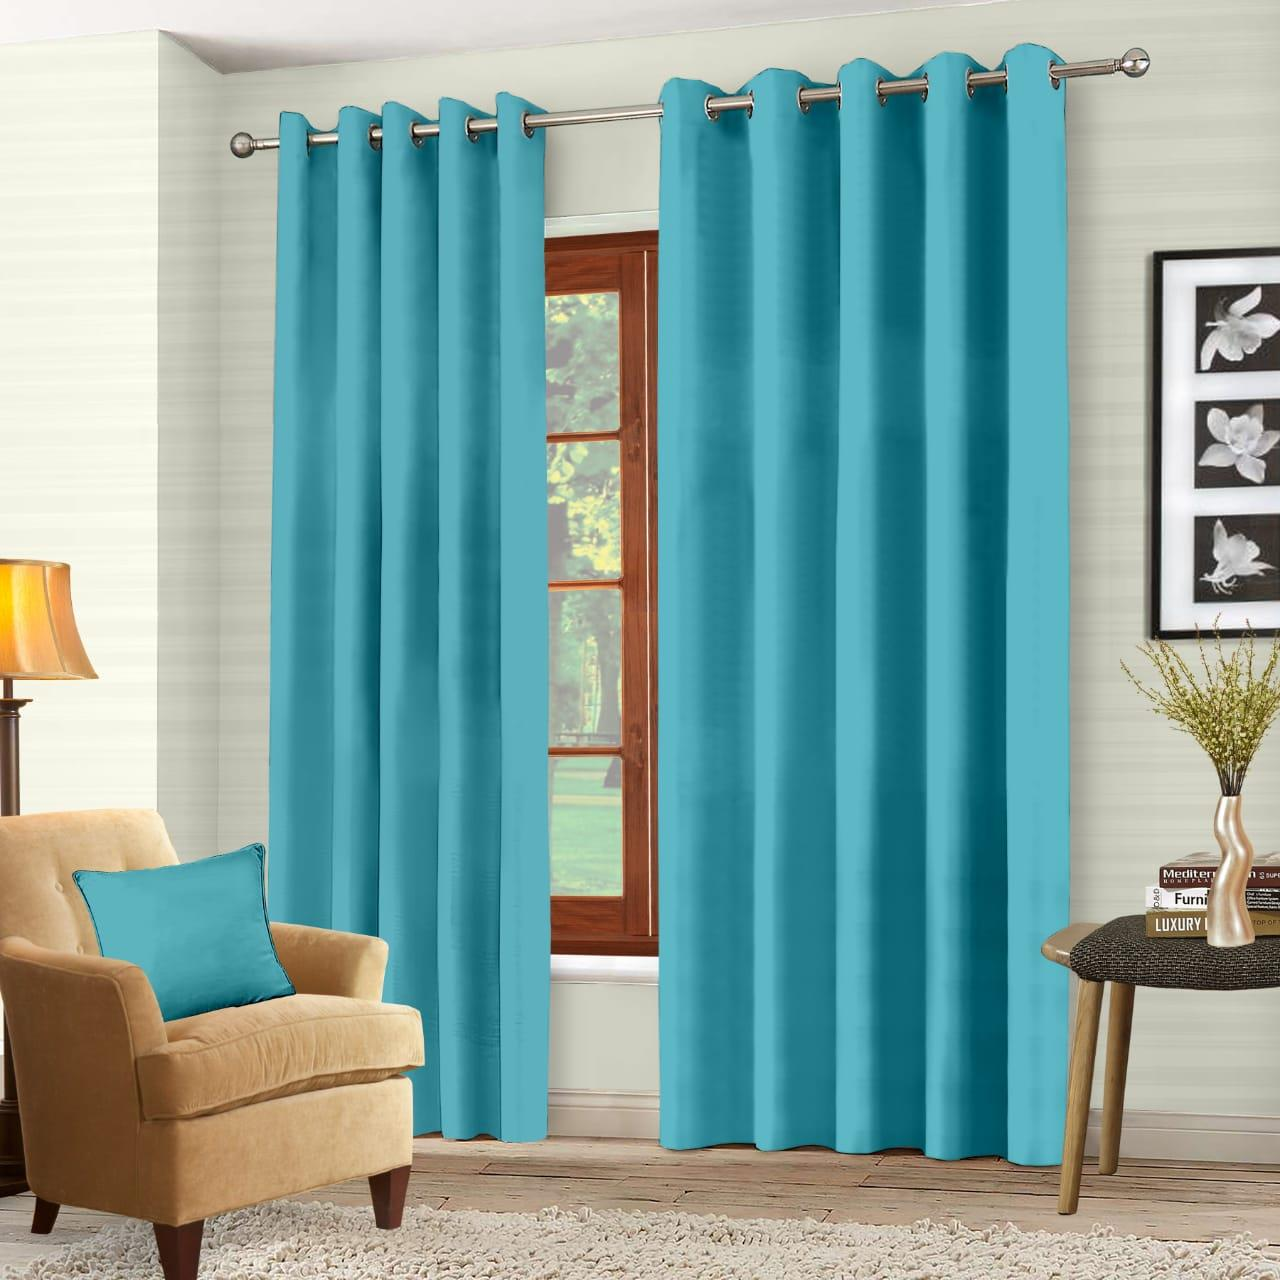 Luxury-Thermal-Blackout-Eyelet-Ring-Top-Curtains-Pair-with-tie-backs thumbnail 51